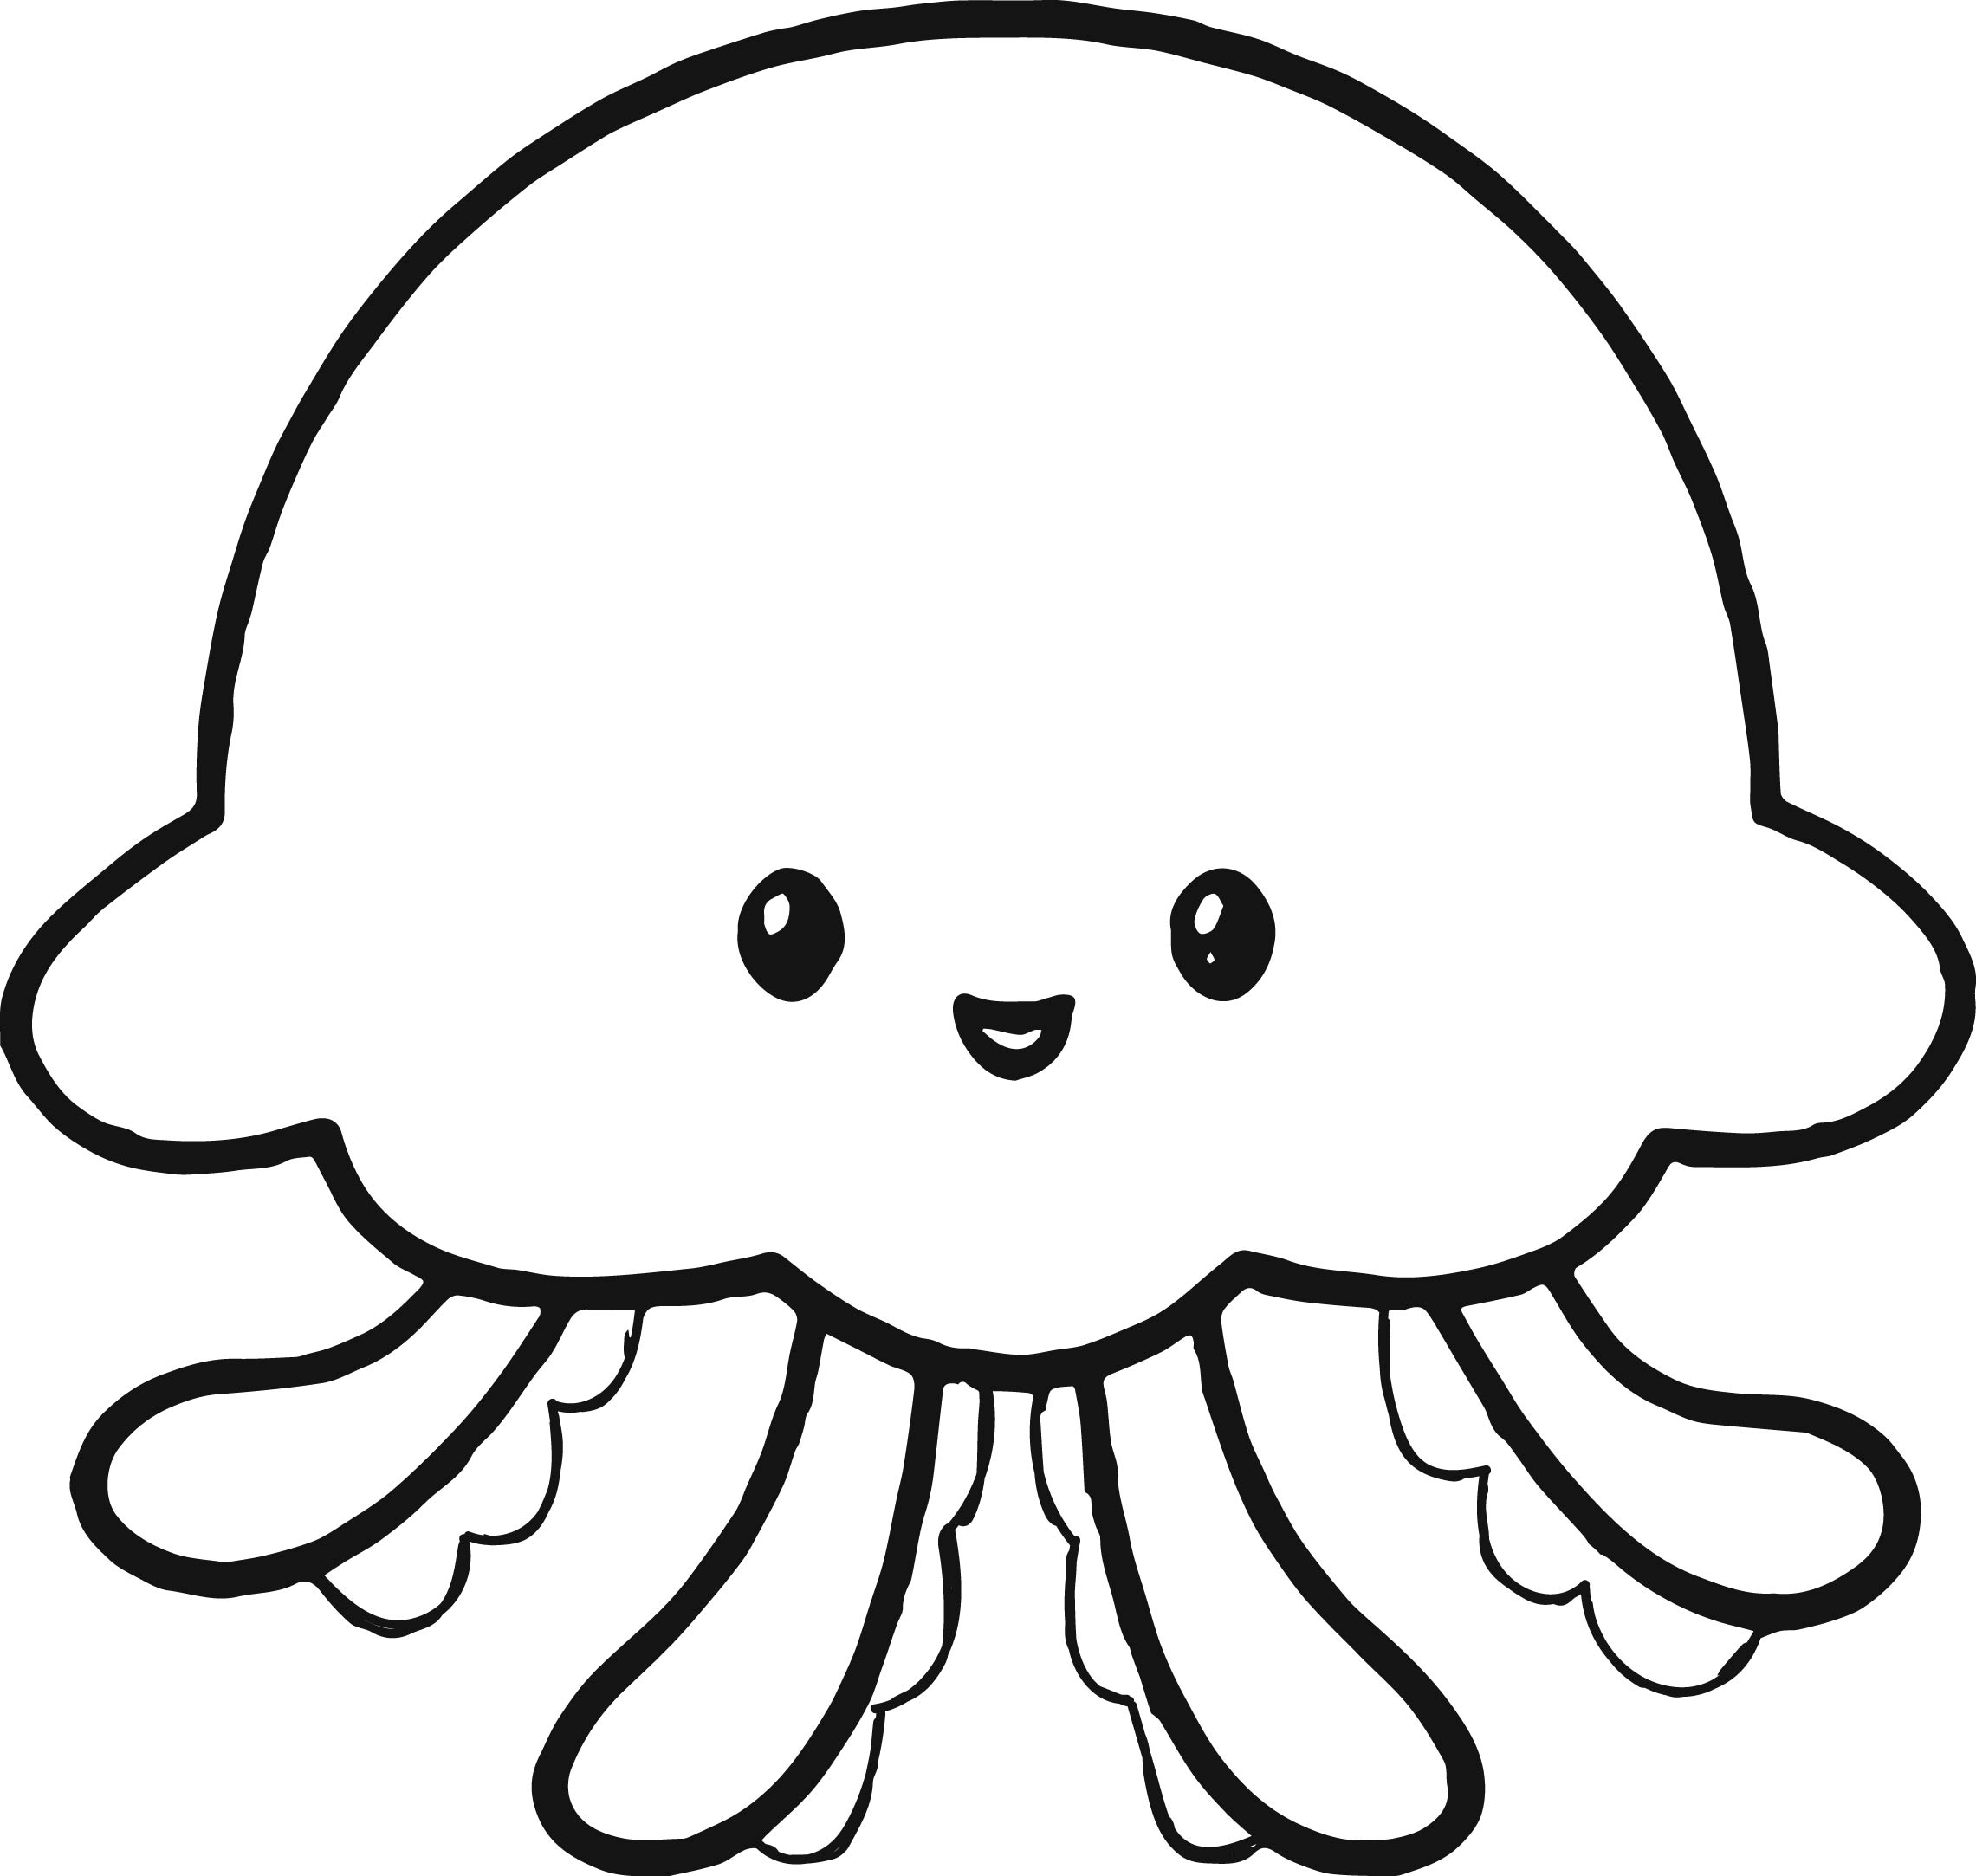 Jellyfish coloring #1, Download drawings